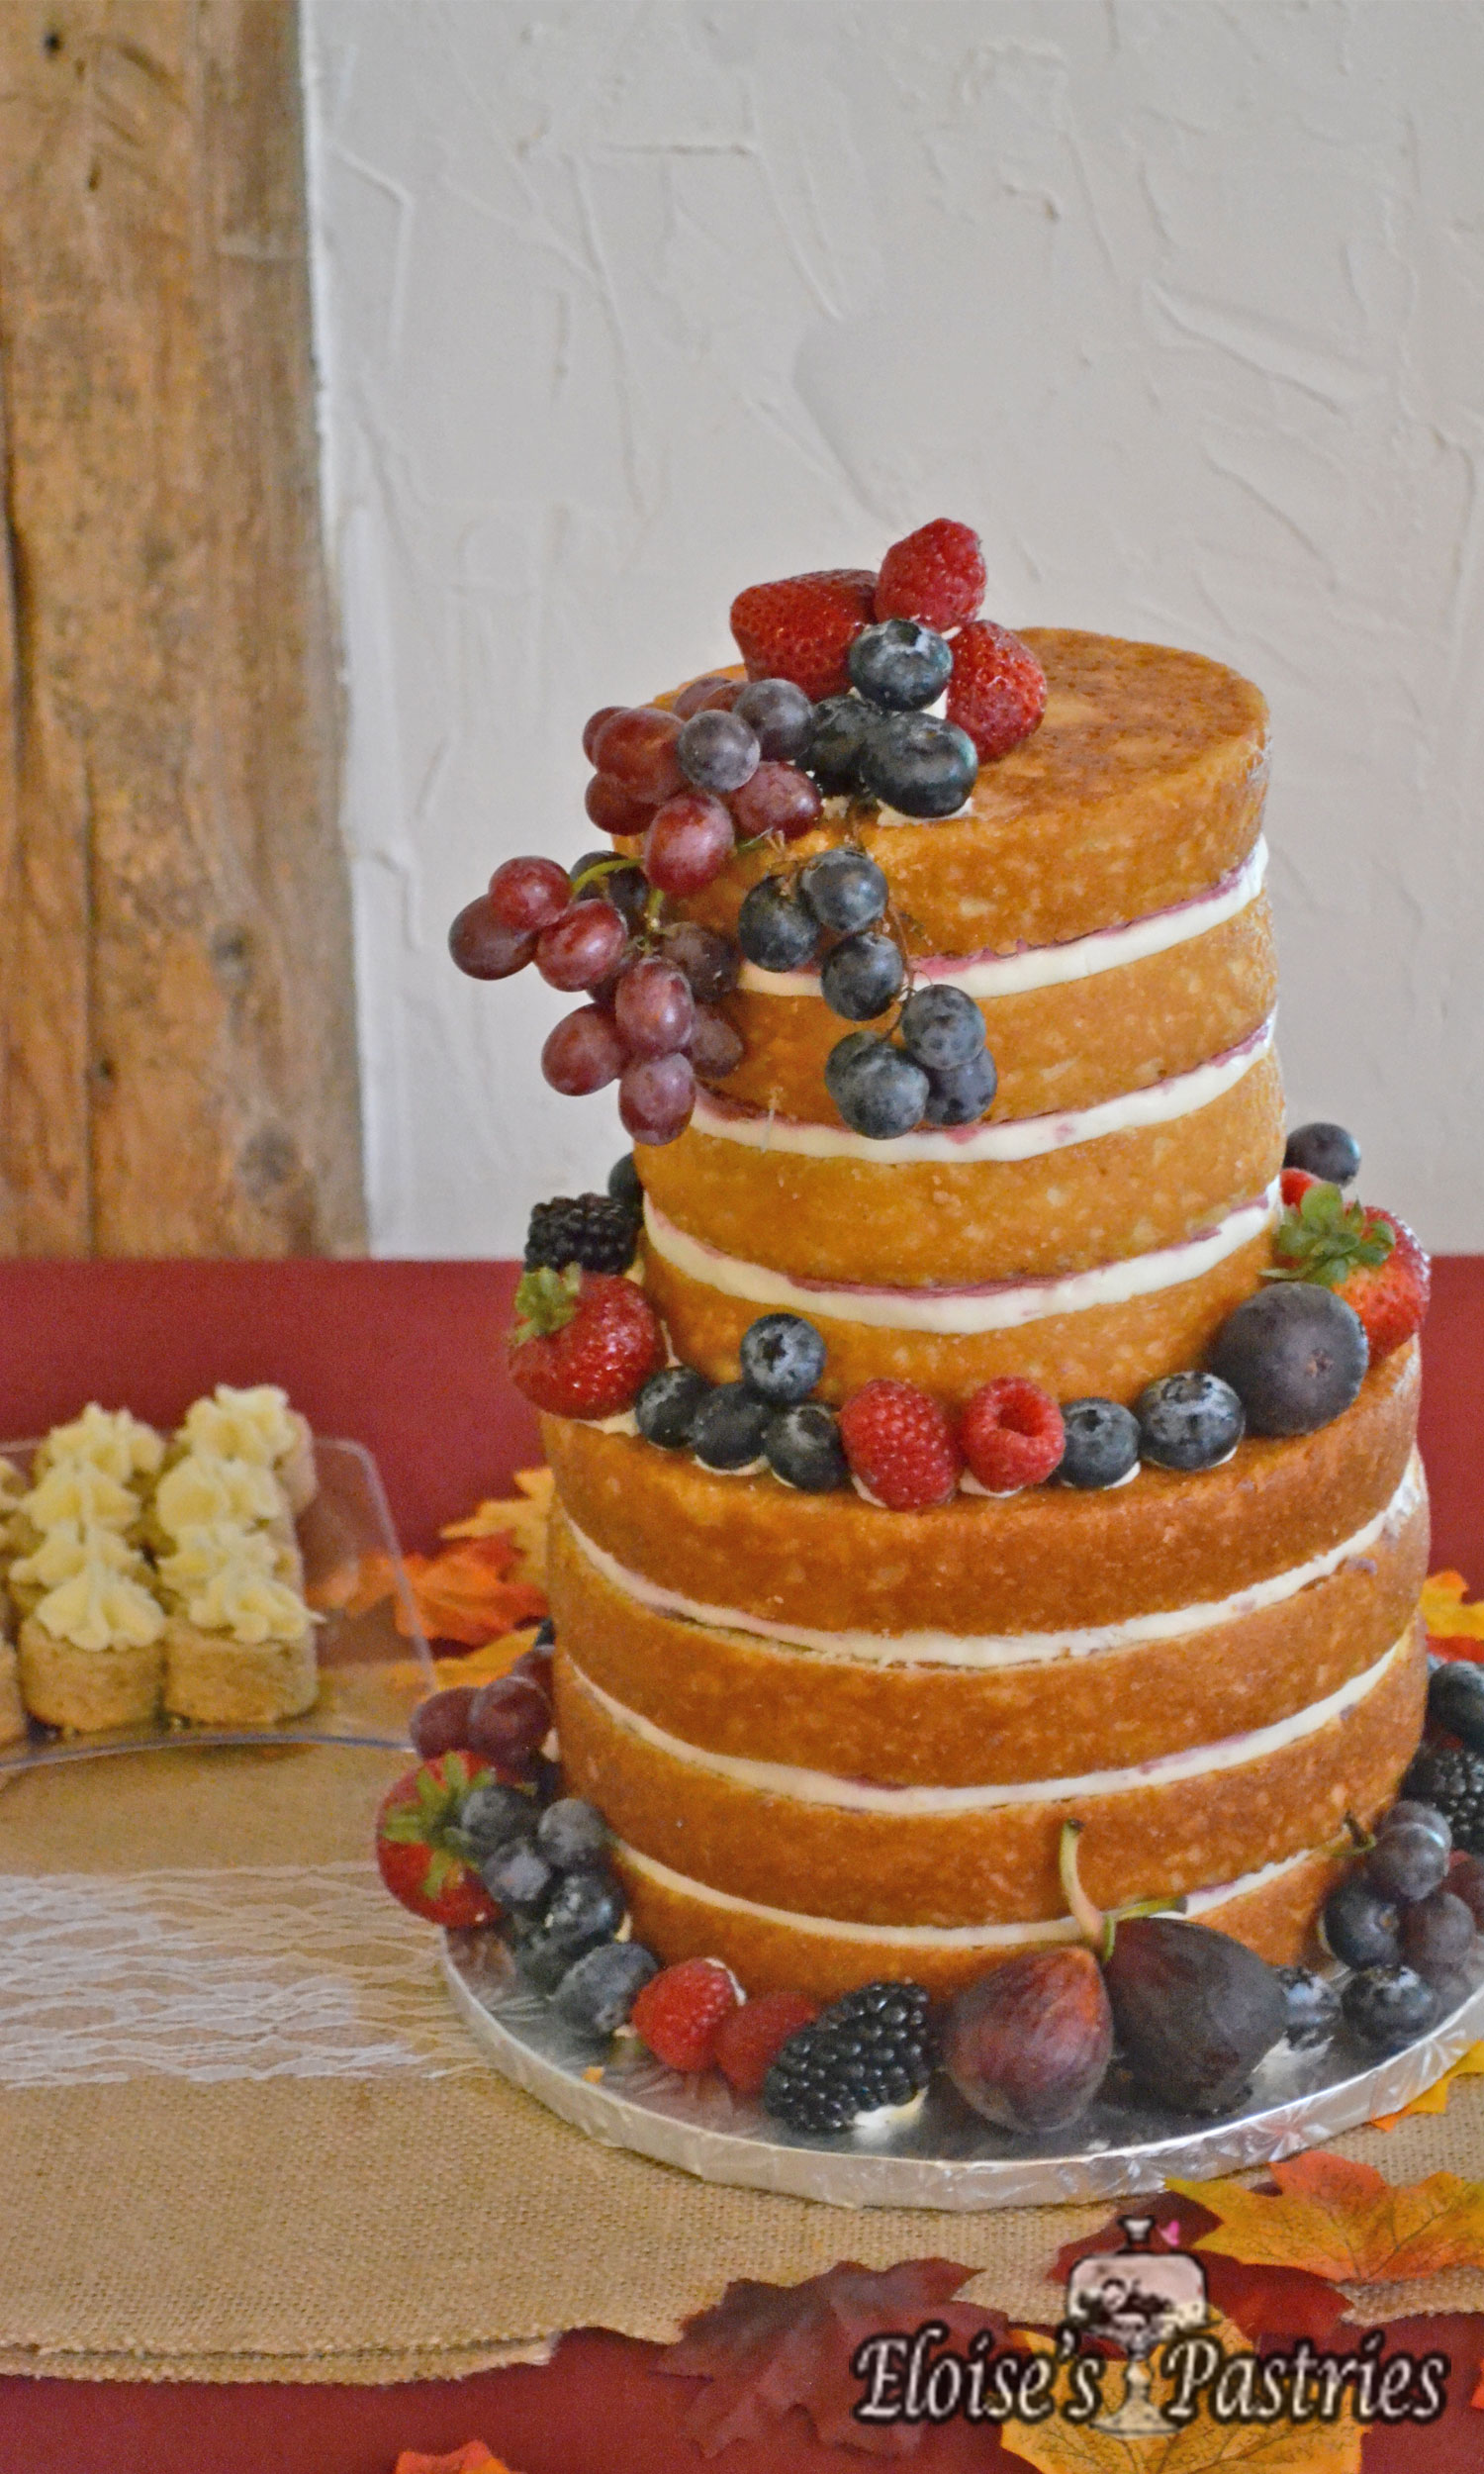 Naked Two Tier Wedding Cake with Fruit